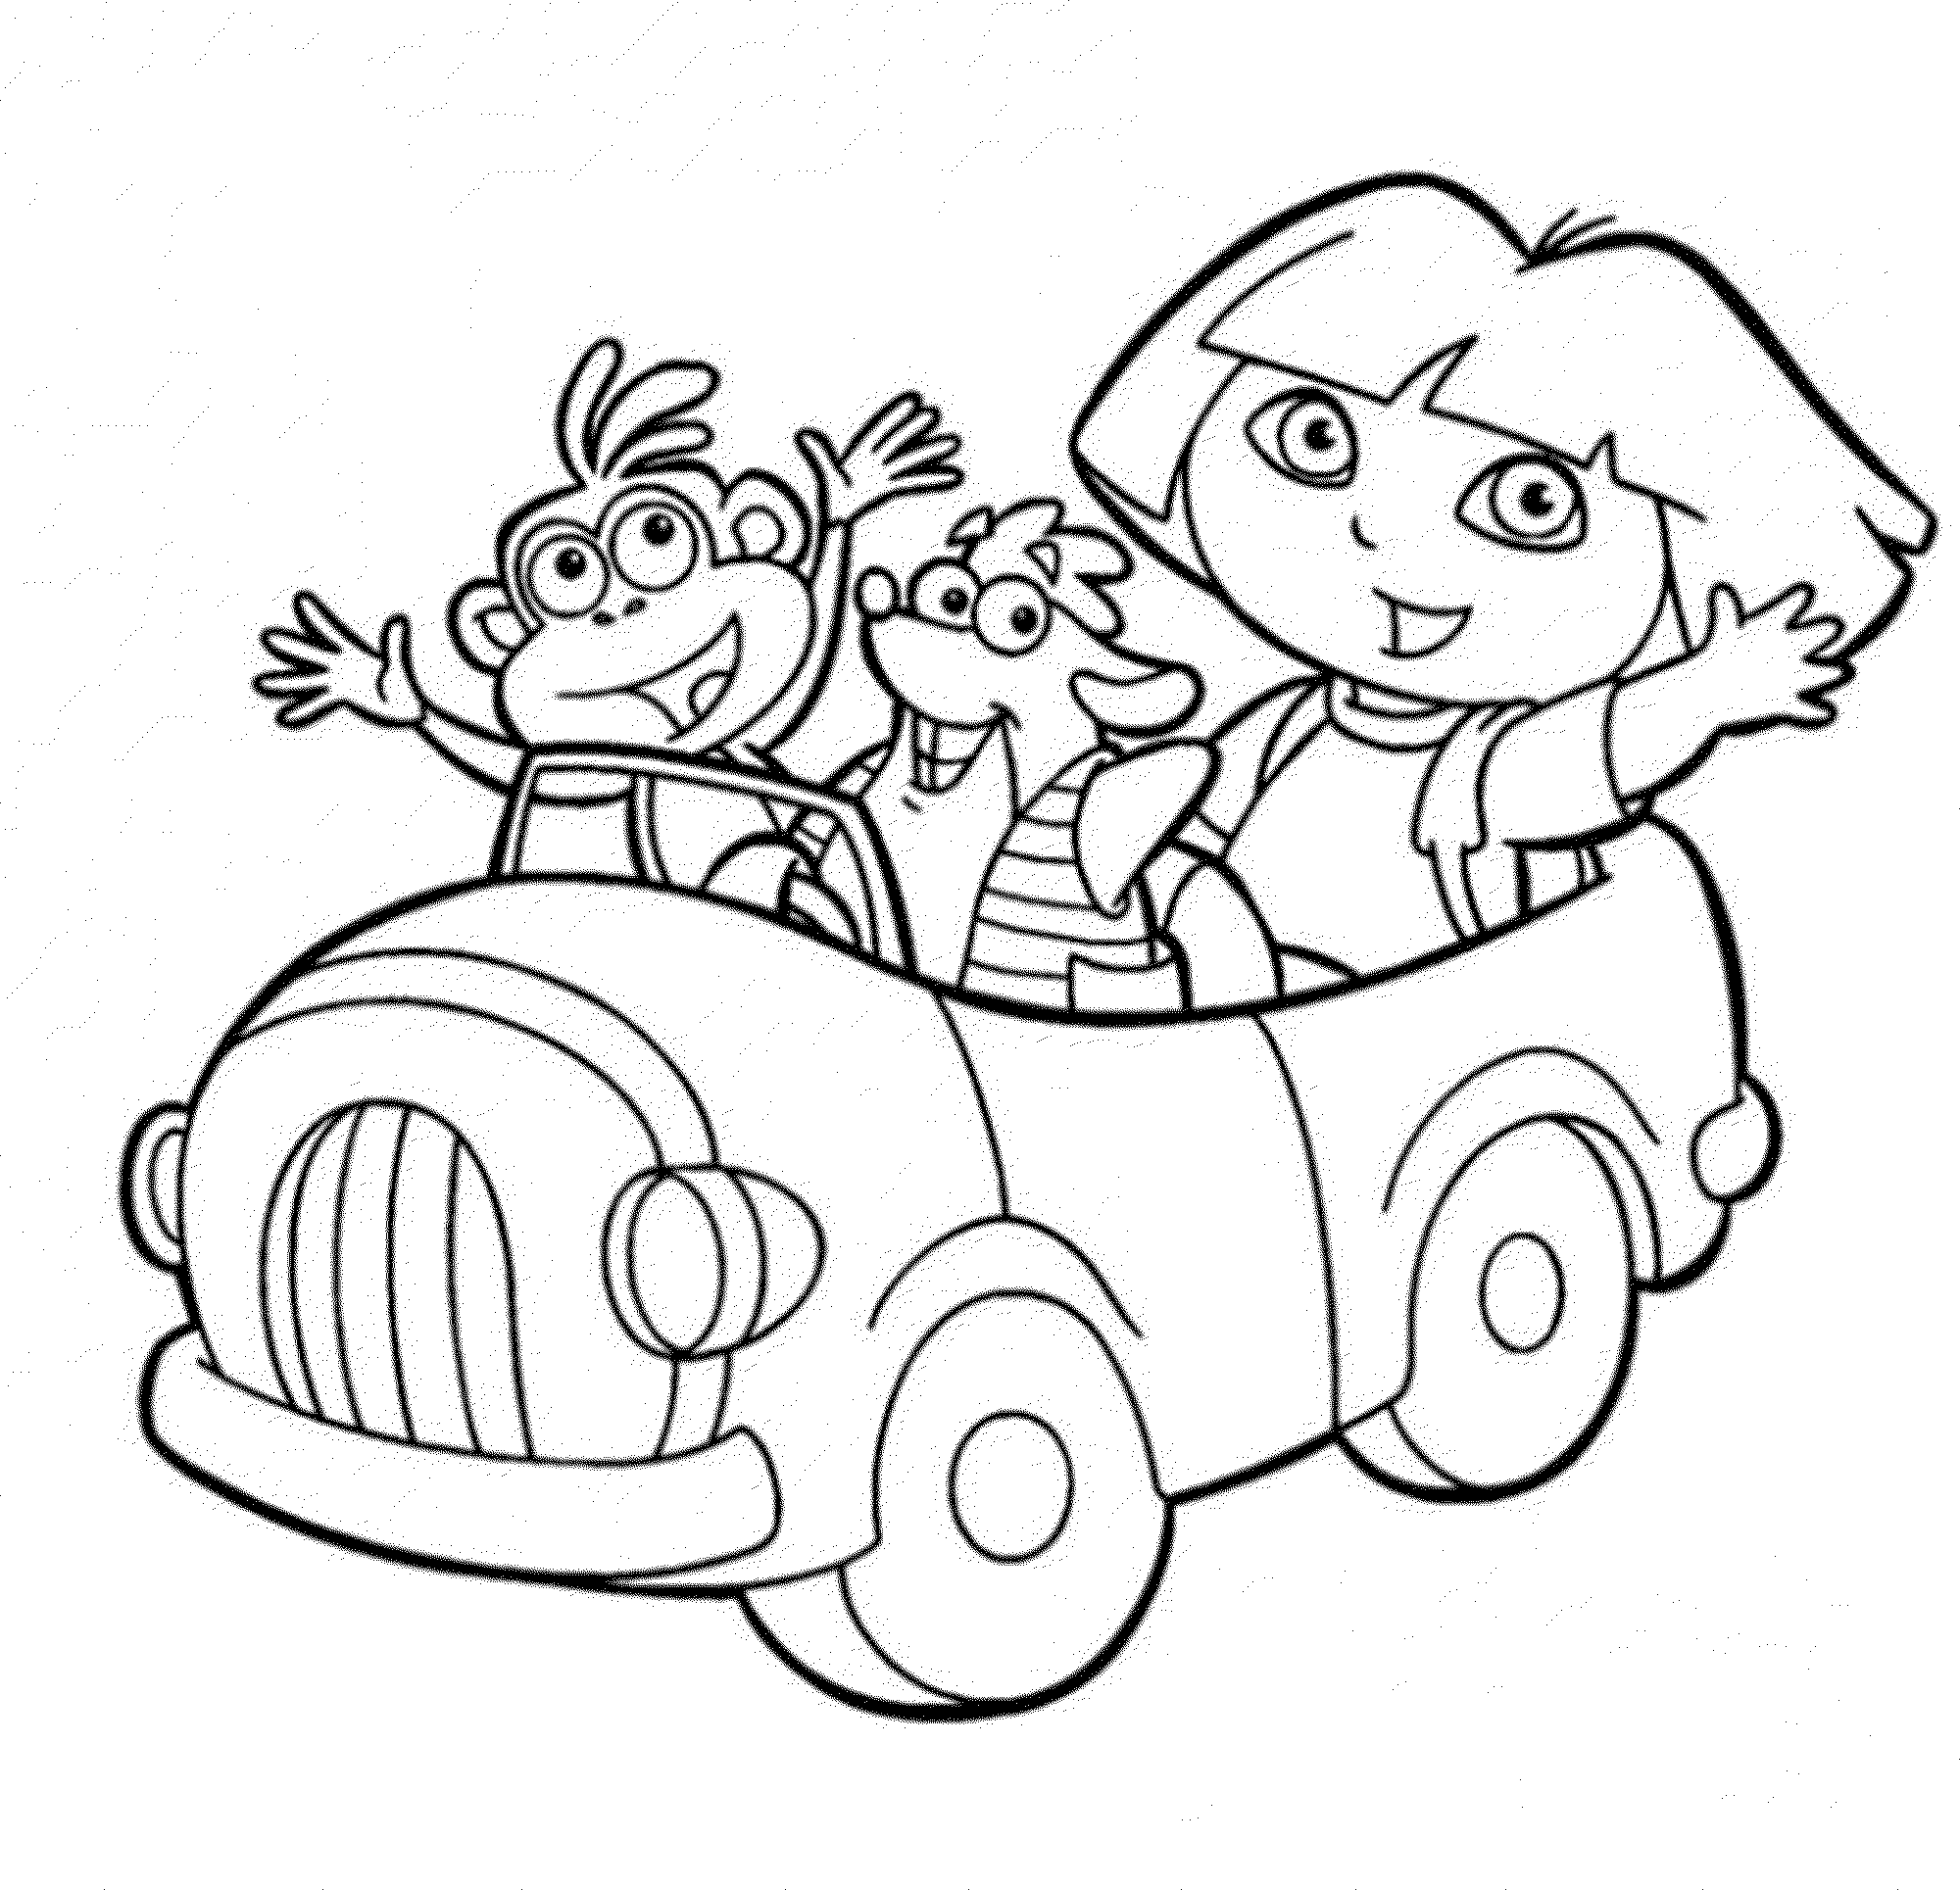 dora coloring page dora colouring pictures coloring pages to print dora page coloring